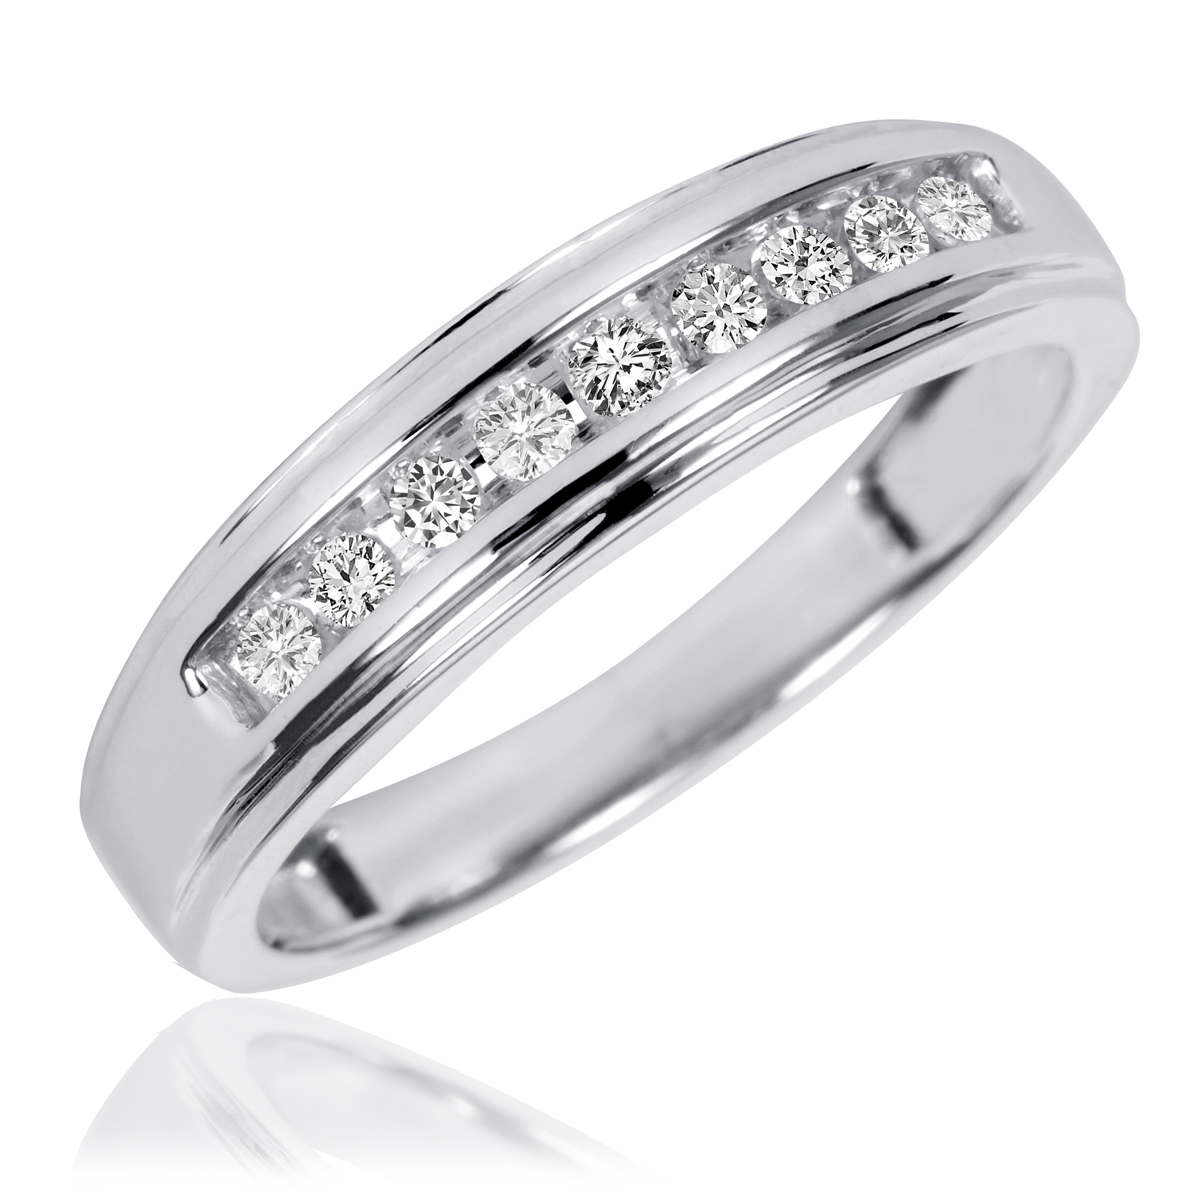 1 Carat TW Diamond Trio Matching Wedding Ring Set 10K White Gold